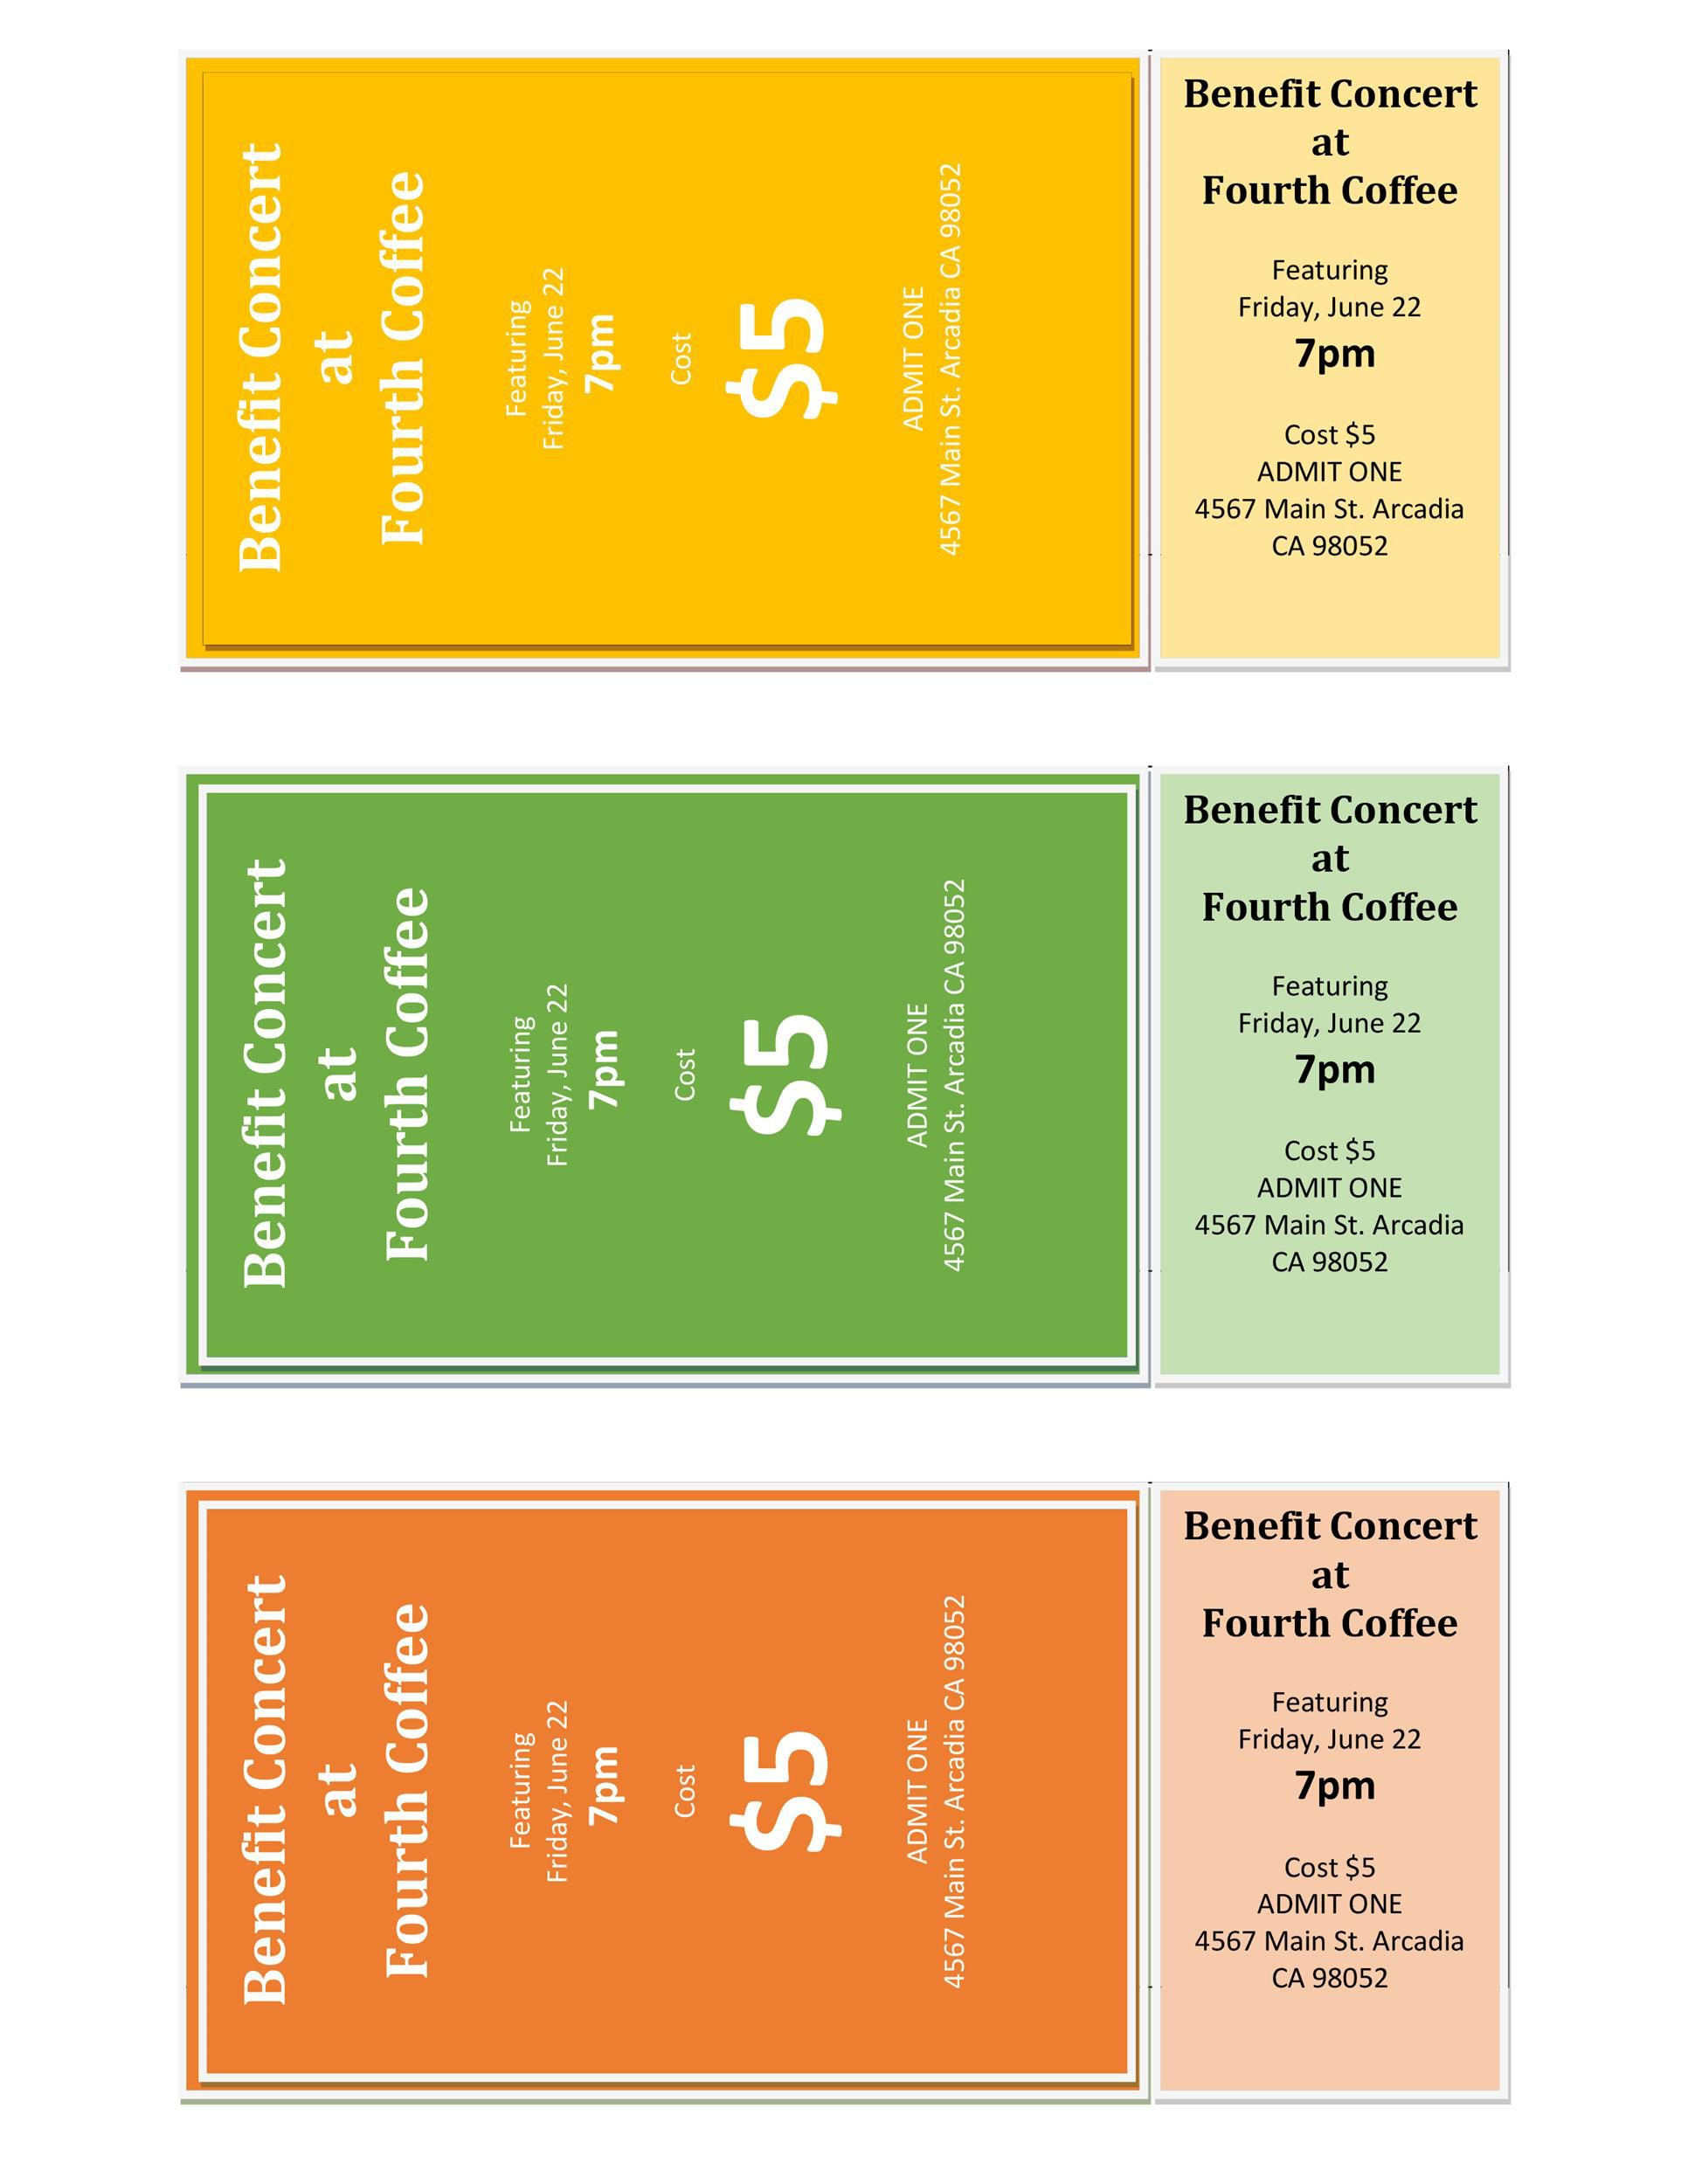 004 Wondrou Fundraiser Ticket Template Free Picture  Printable Download Car WashFull